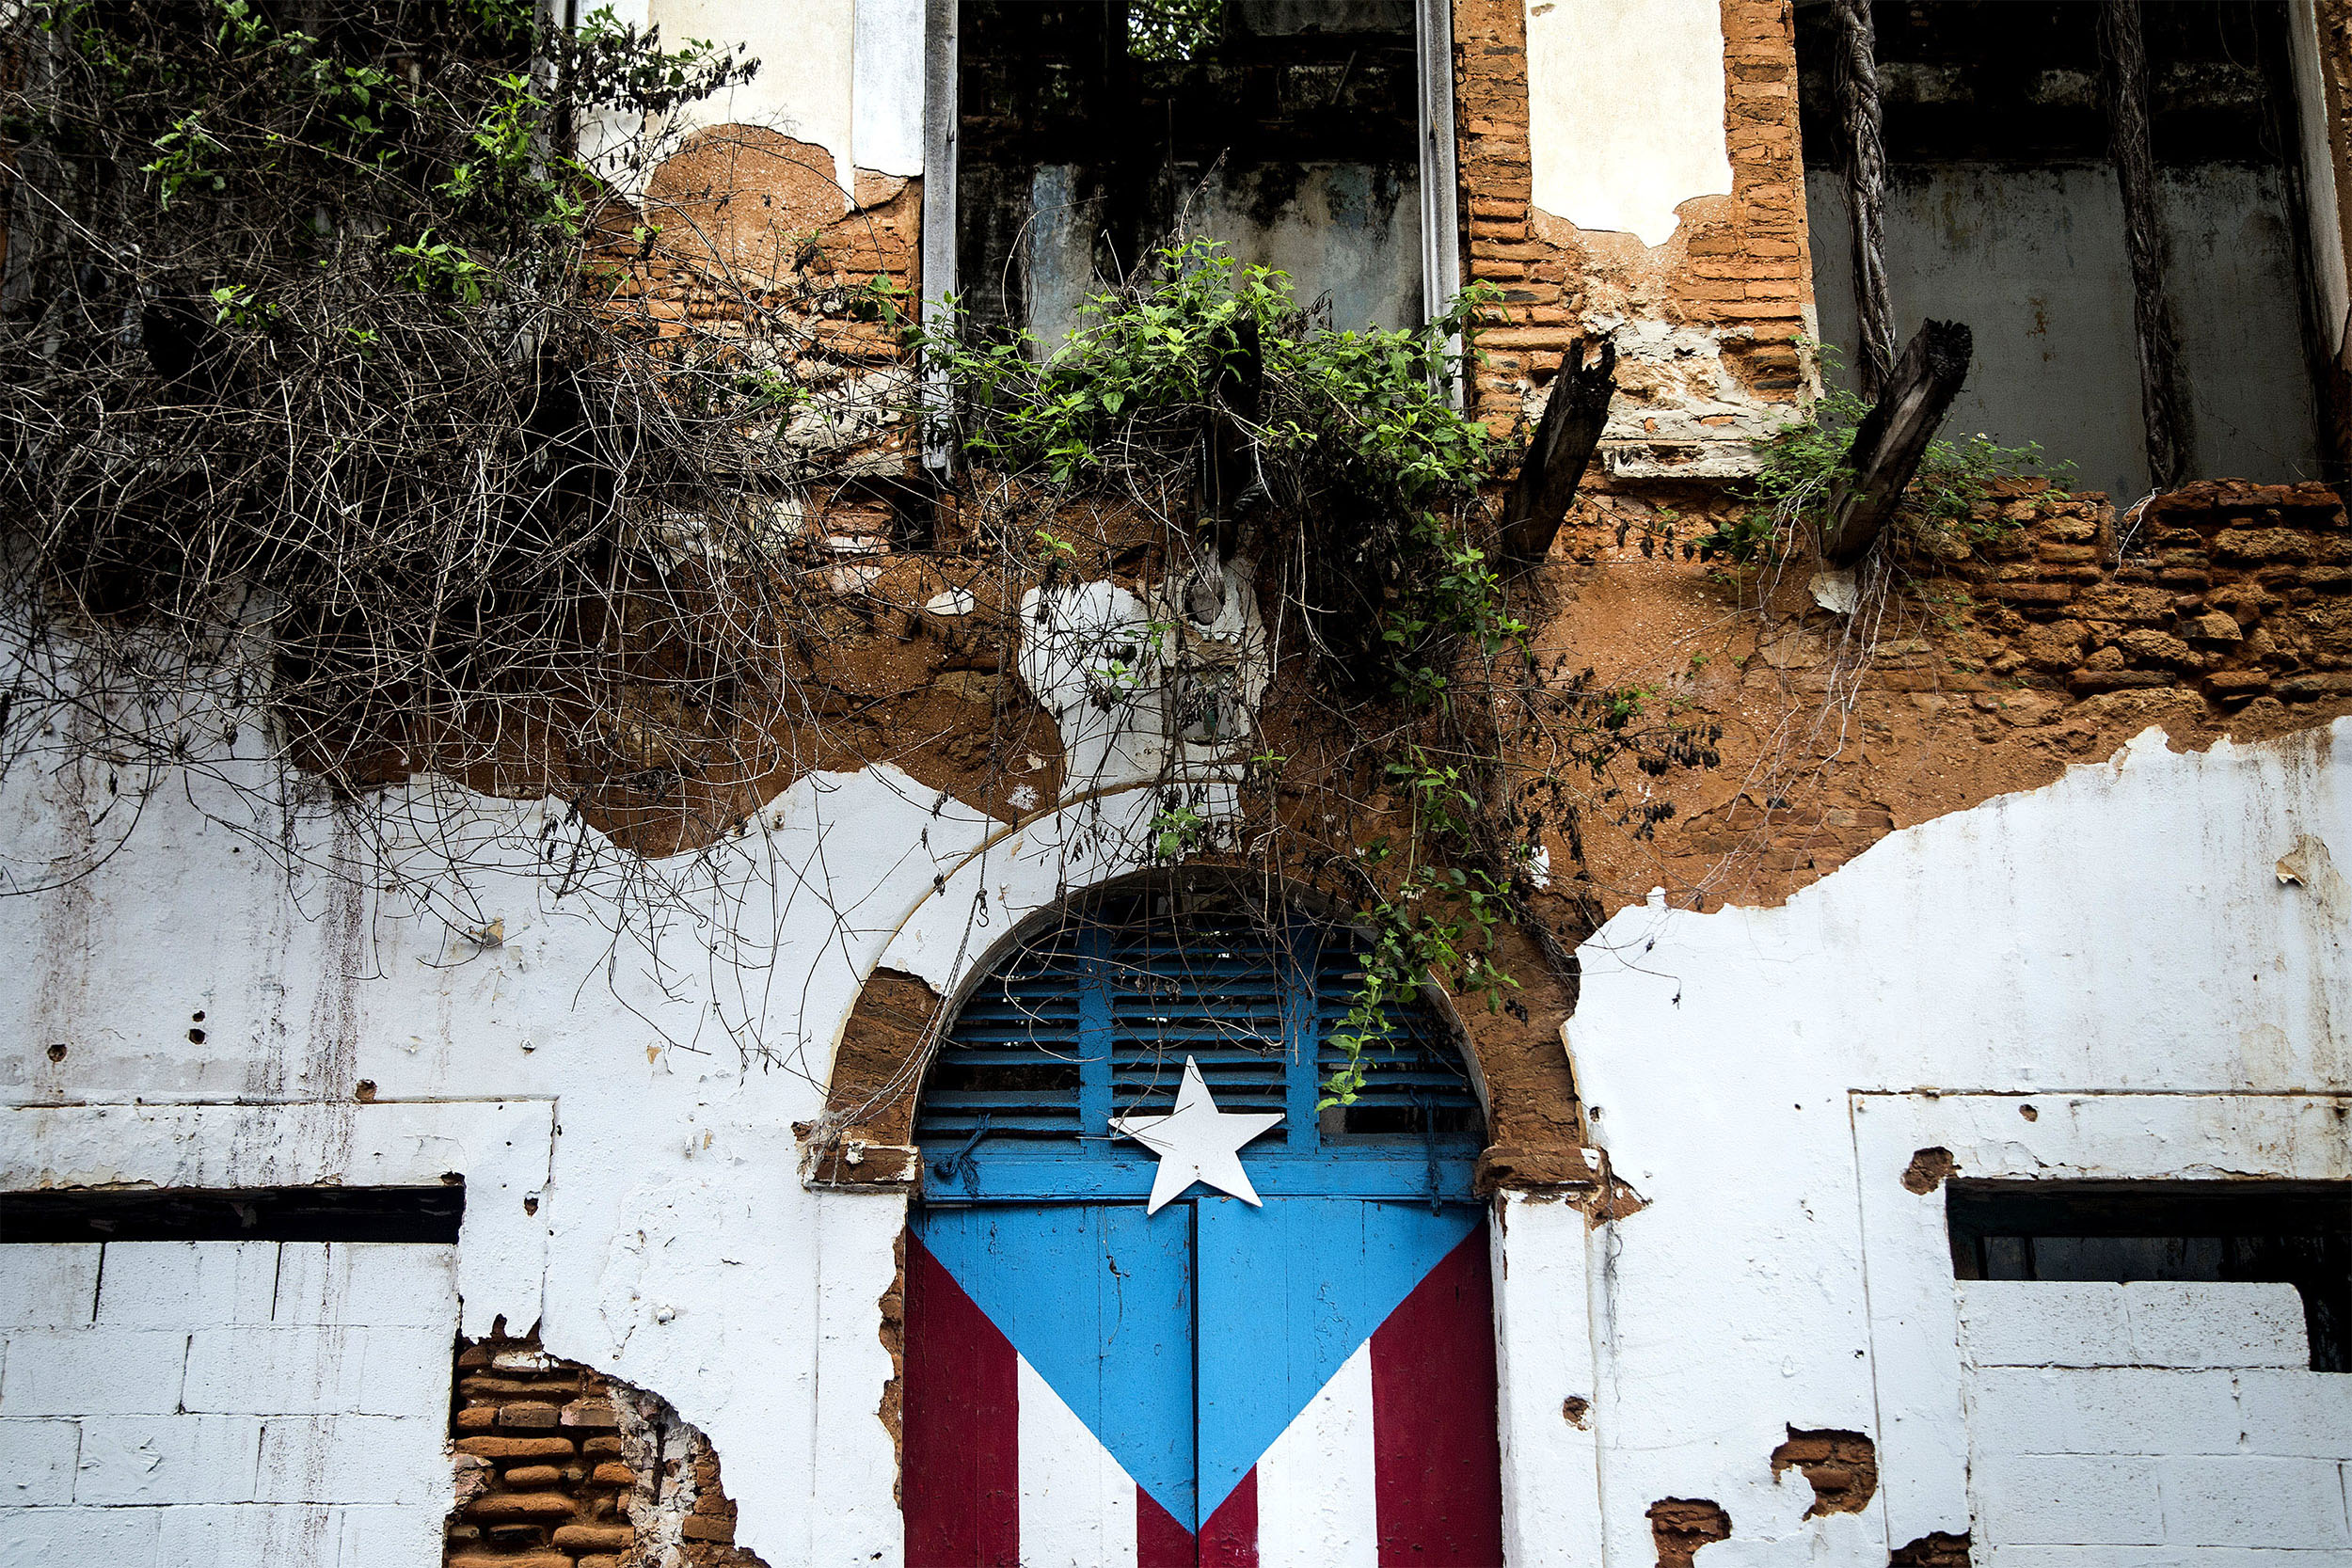 | A Puerto Rican flag is painted on the doorway of an abandoned building in San Juan Puerto Rico on May 1 2016 | MR Online